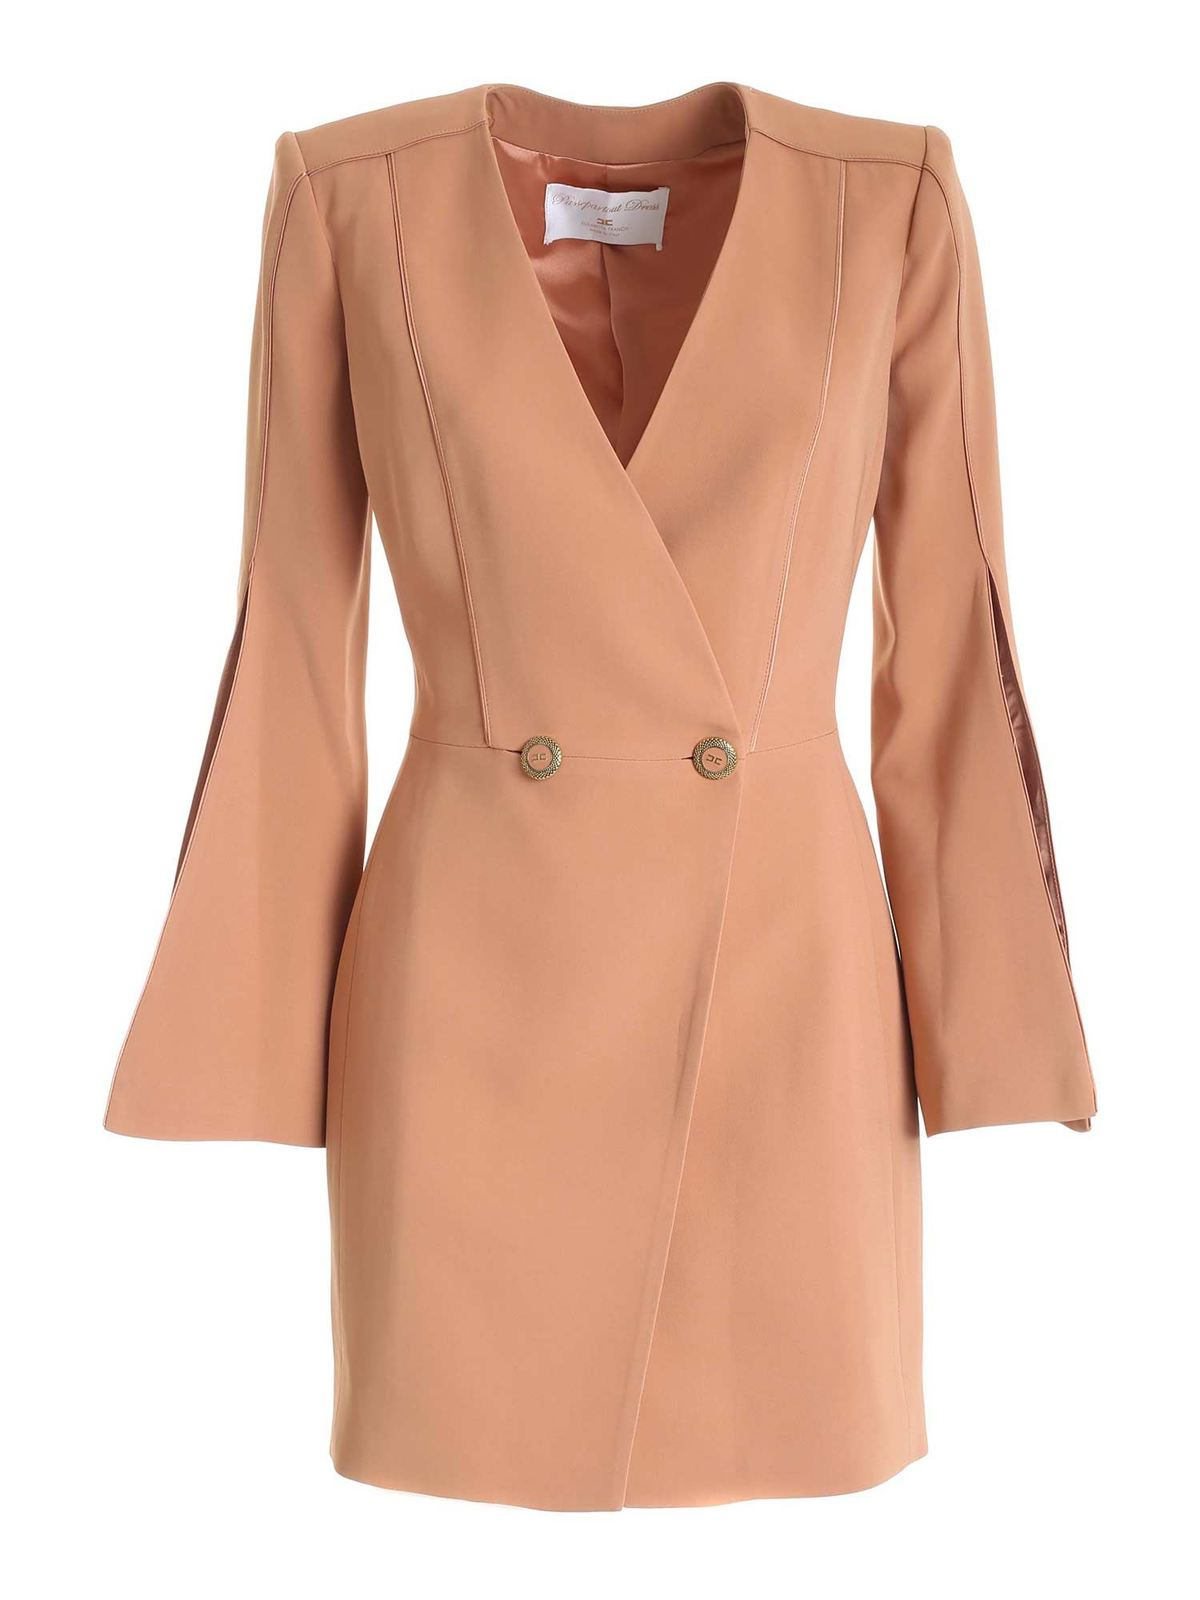 Elisabetta Franchi CREPE DOUBLE-BREASTED DRESS IN NUDE COLOR